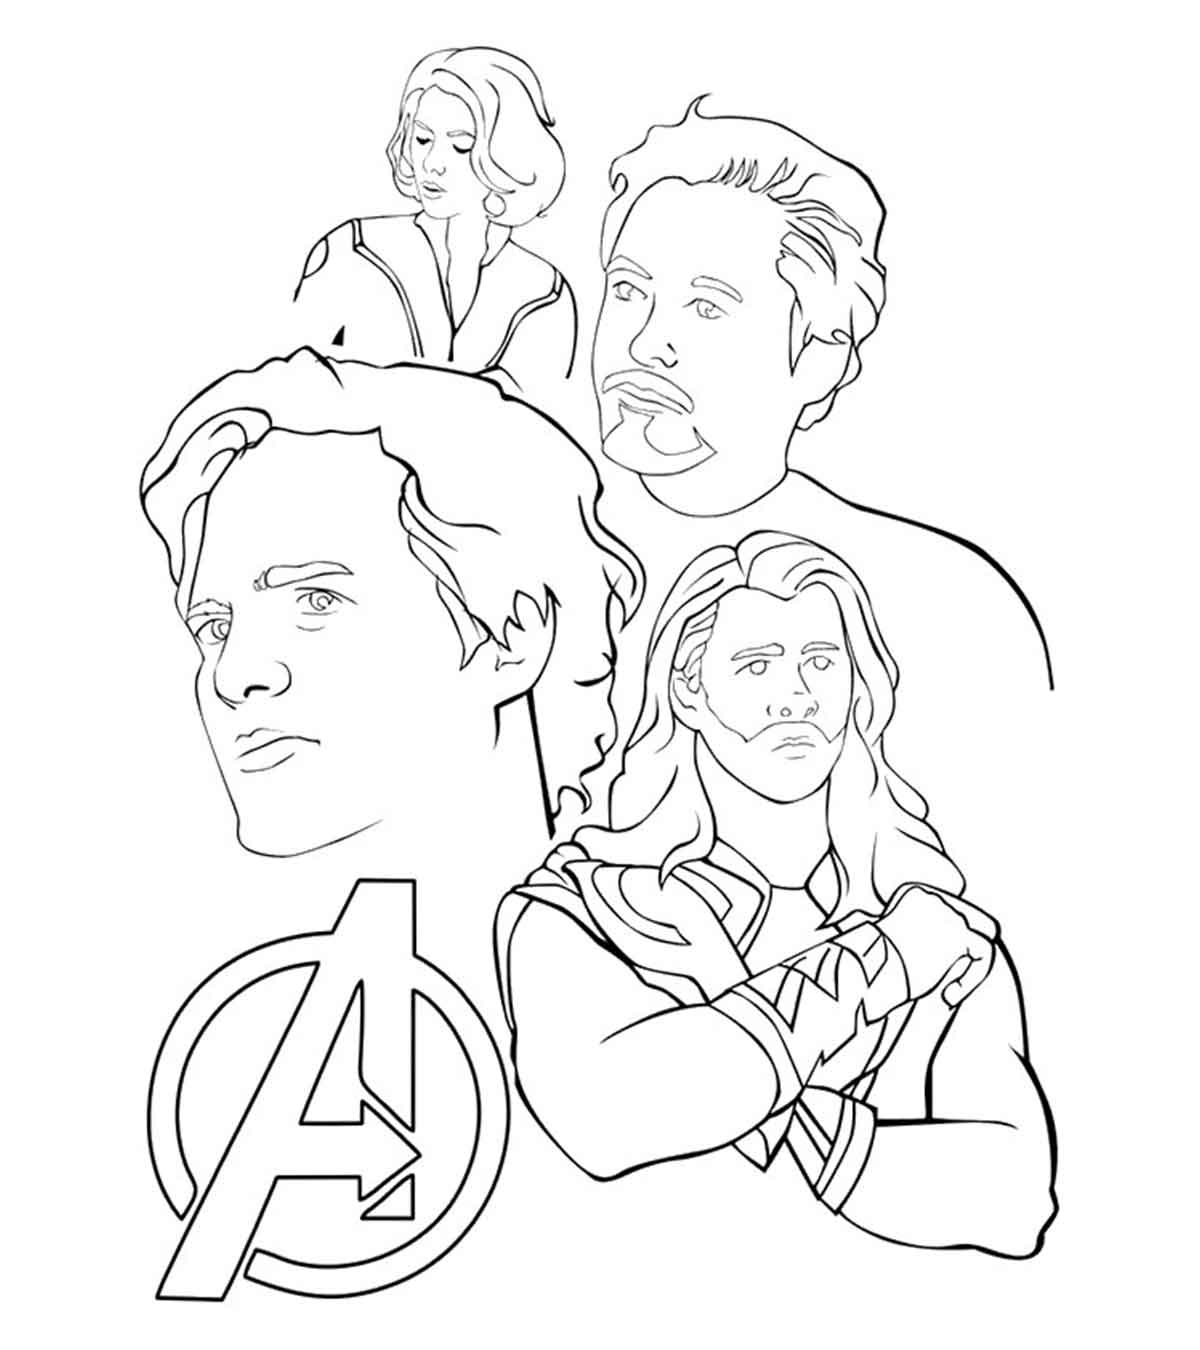 Black Widow Avengers Coloring Pages 30 Wonderful Avengers Coloring Pages For Your Toddler